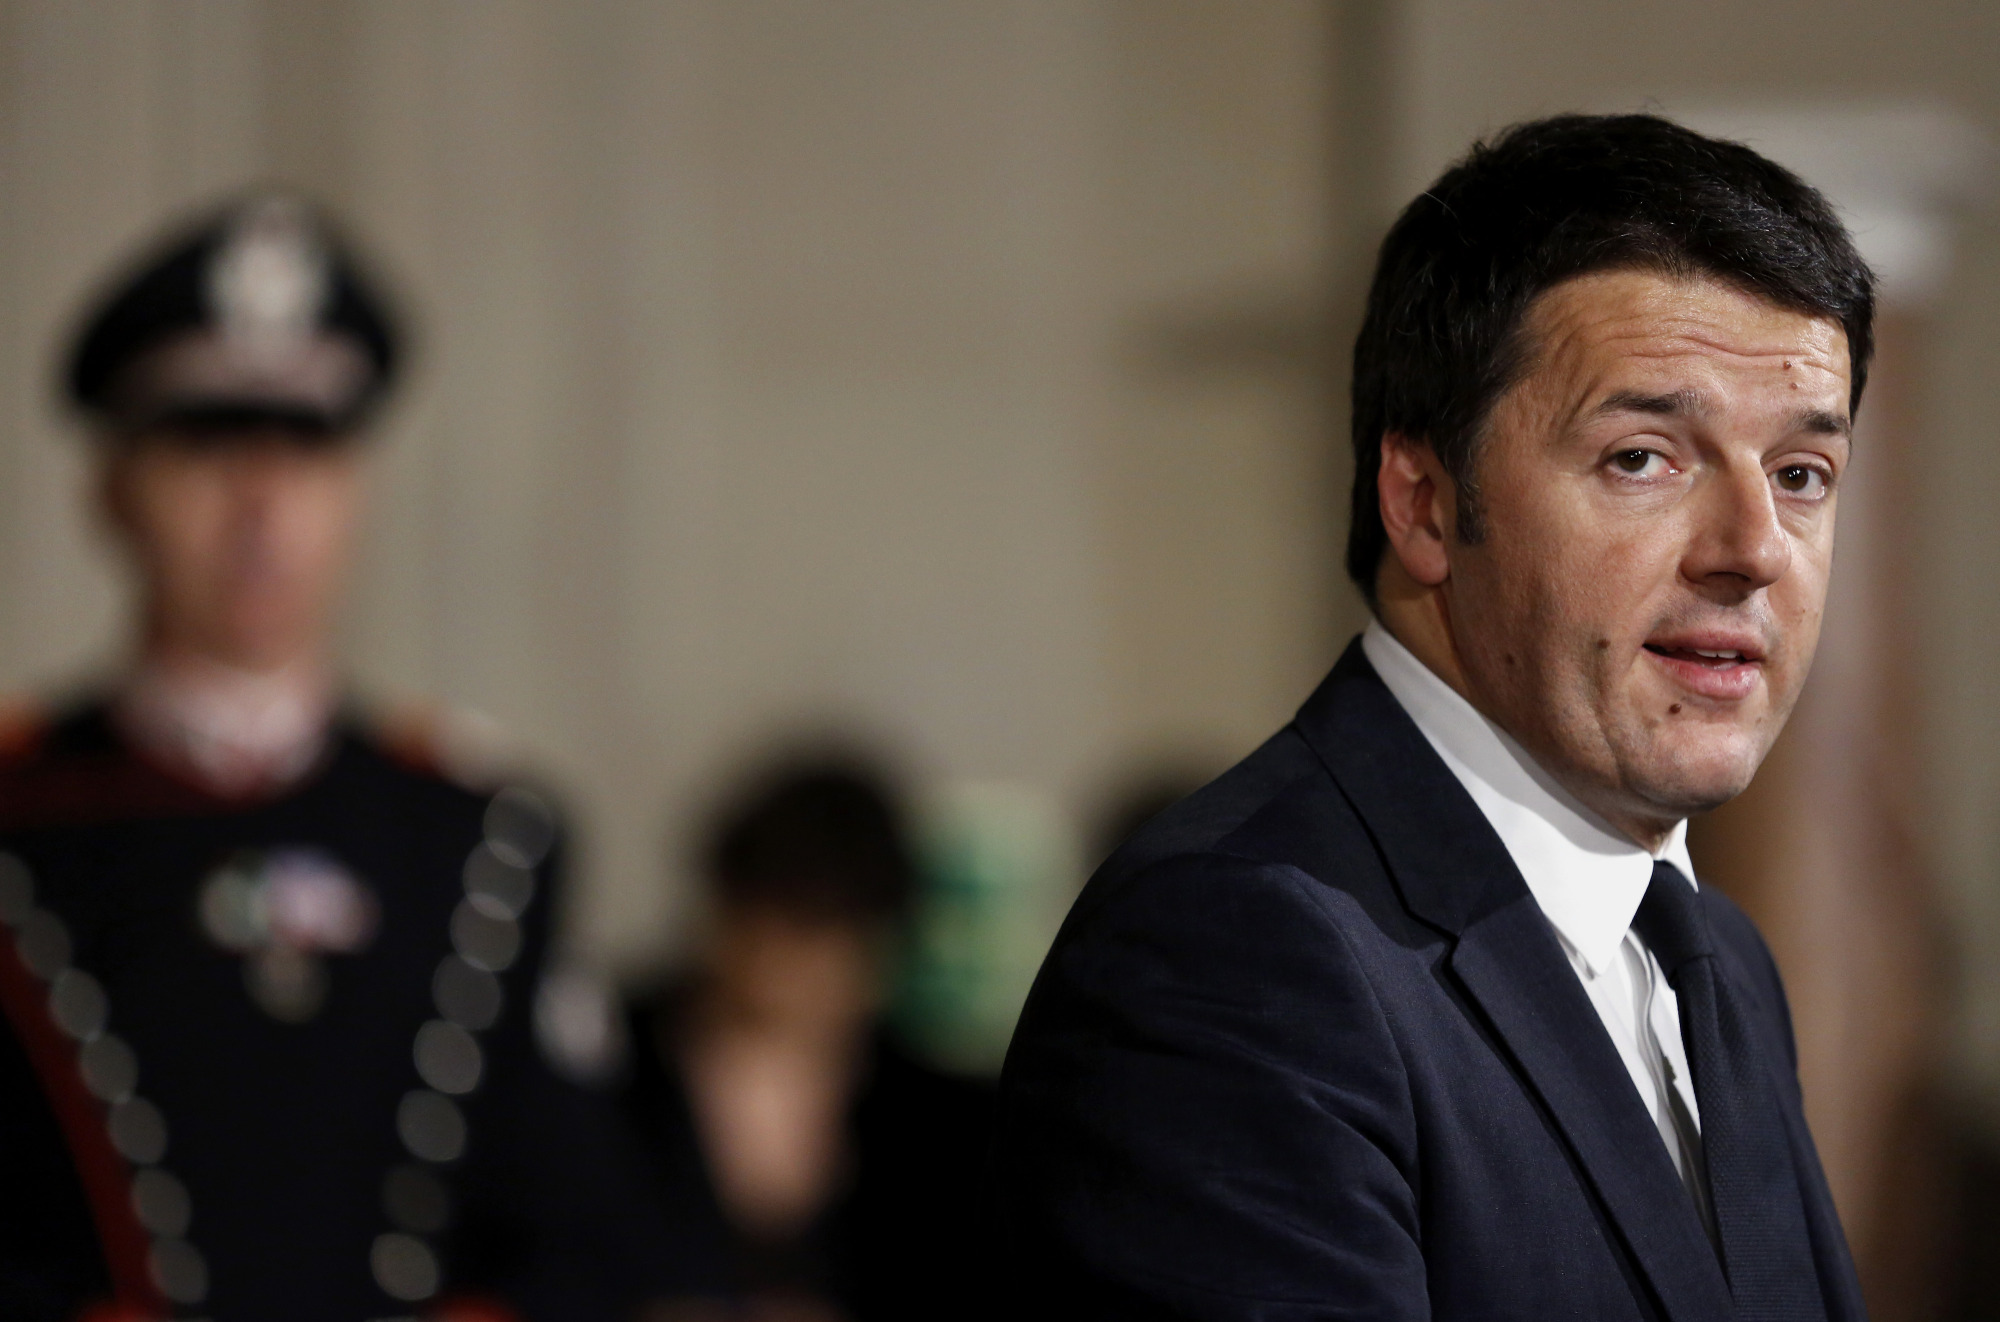 Matteo Renzi, Italy's incoming prime minister, speaks during a news conference to announce the names of the cabinet ministers that will form Italy's new government on Friday, Feb. 21, 2014.